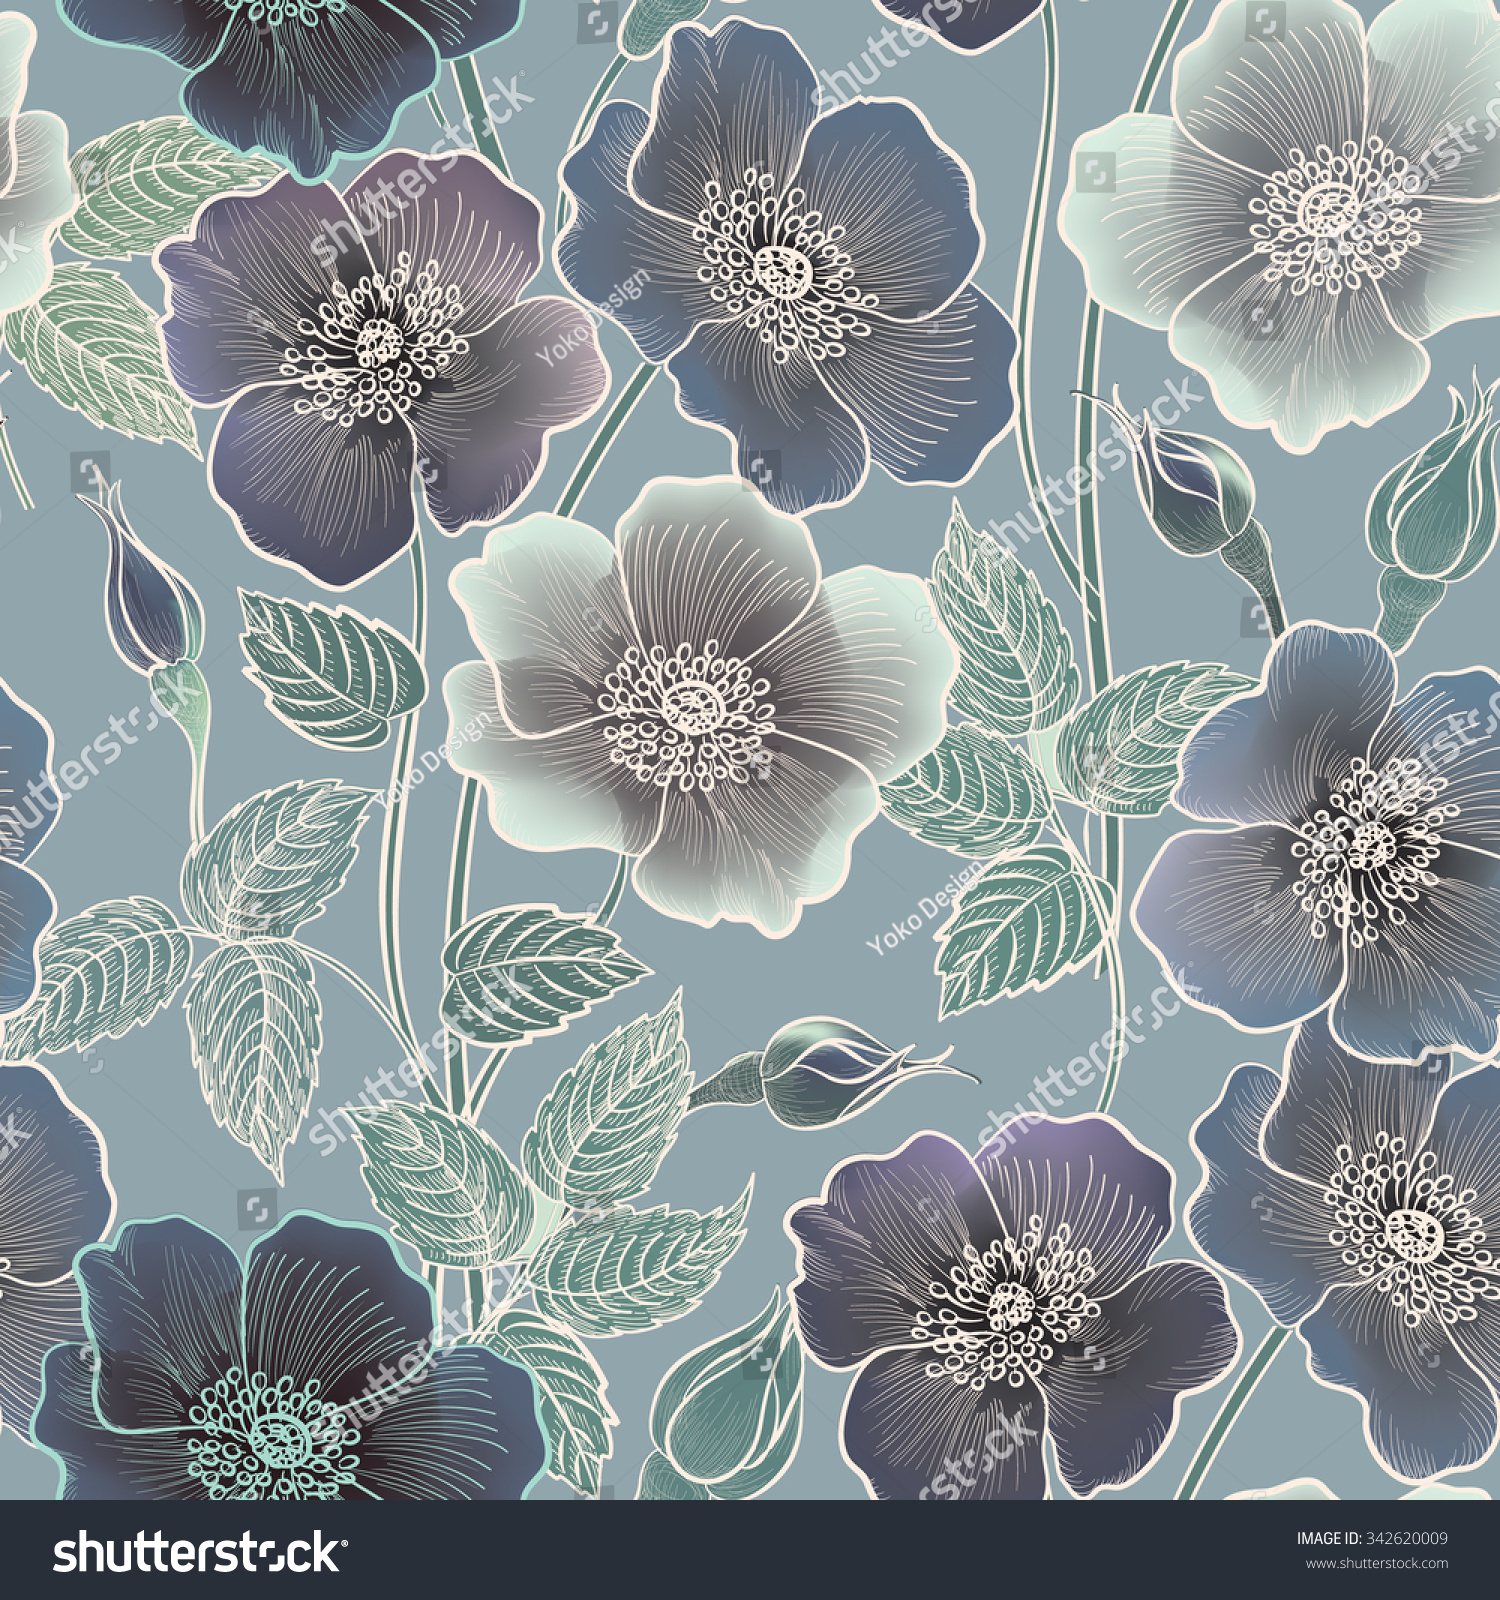 Floral Seamless Pattern Flower Background Floral Stock Vector ...